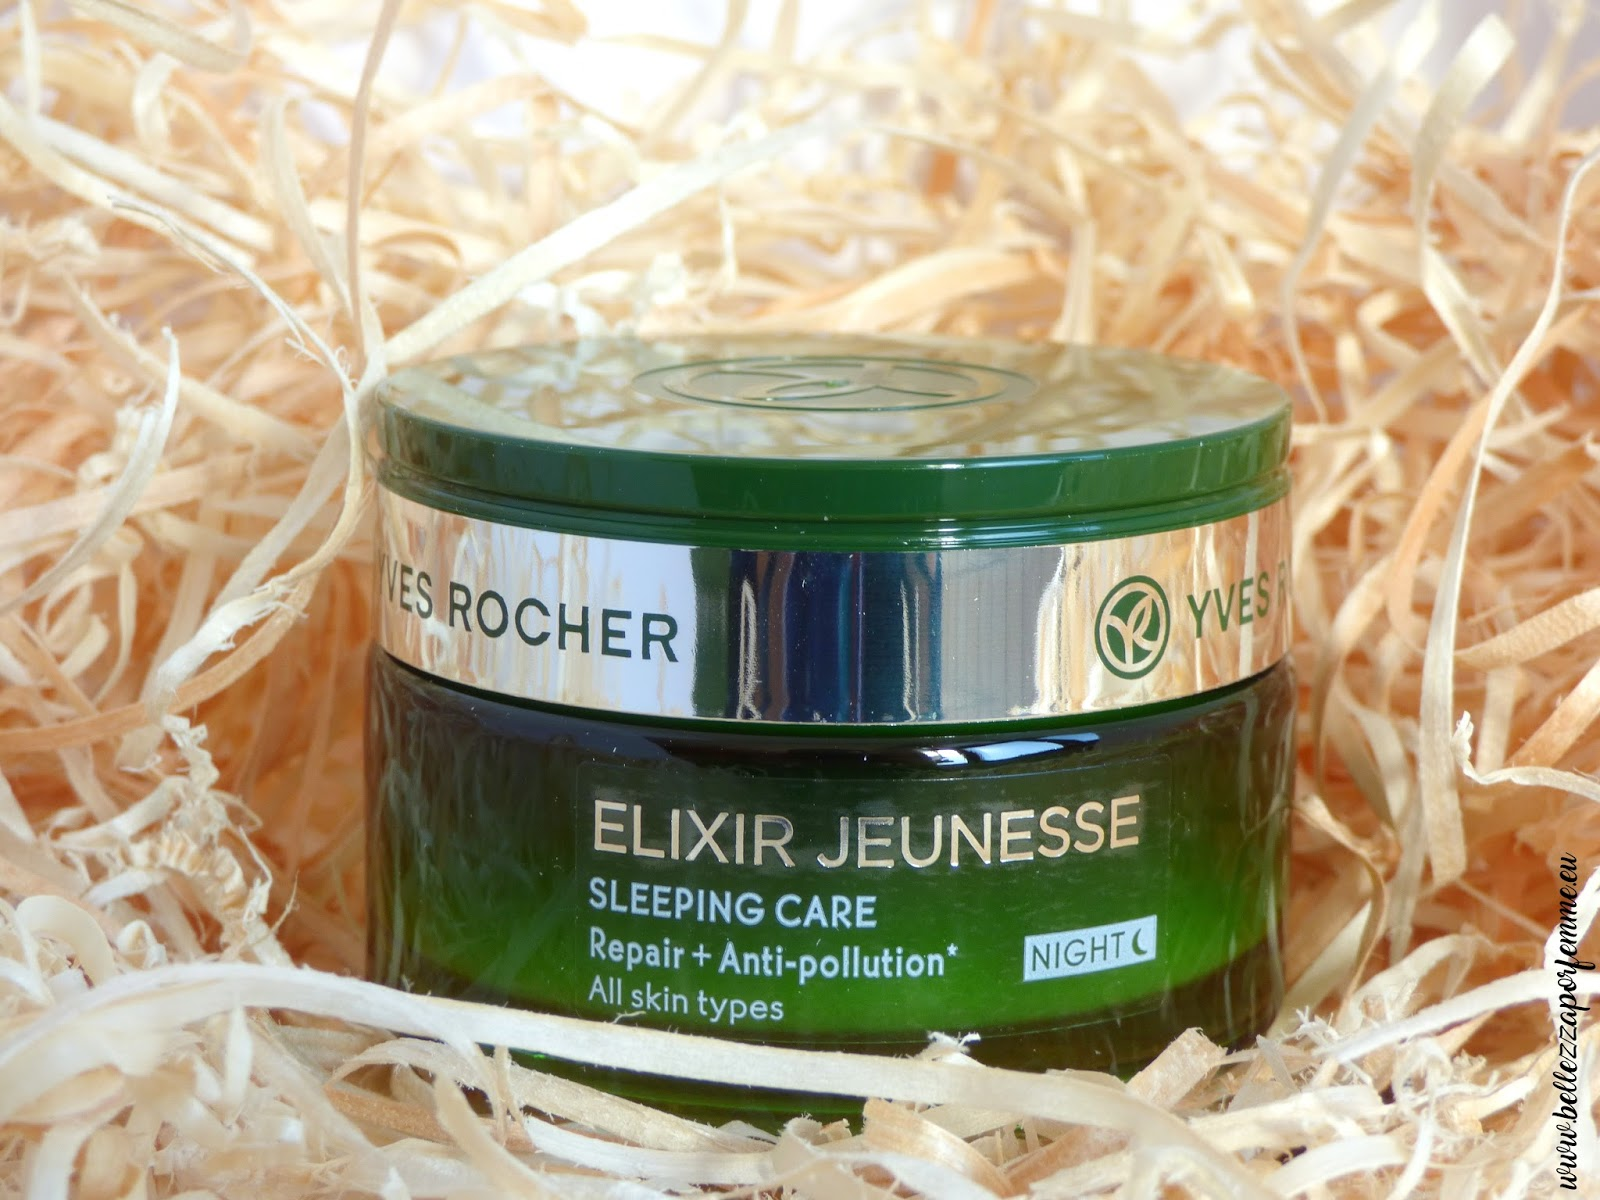 ELIXIR JEUNESSE Sleeping Care